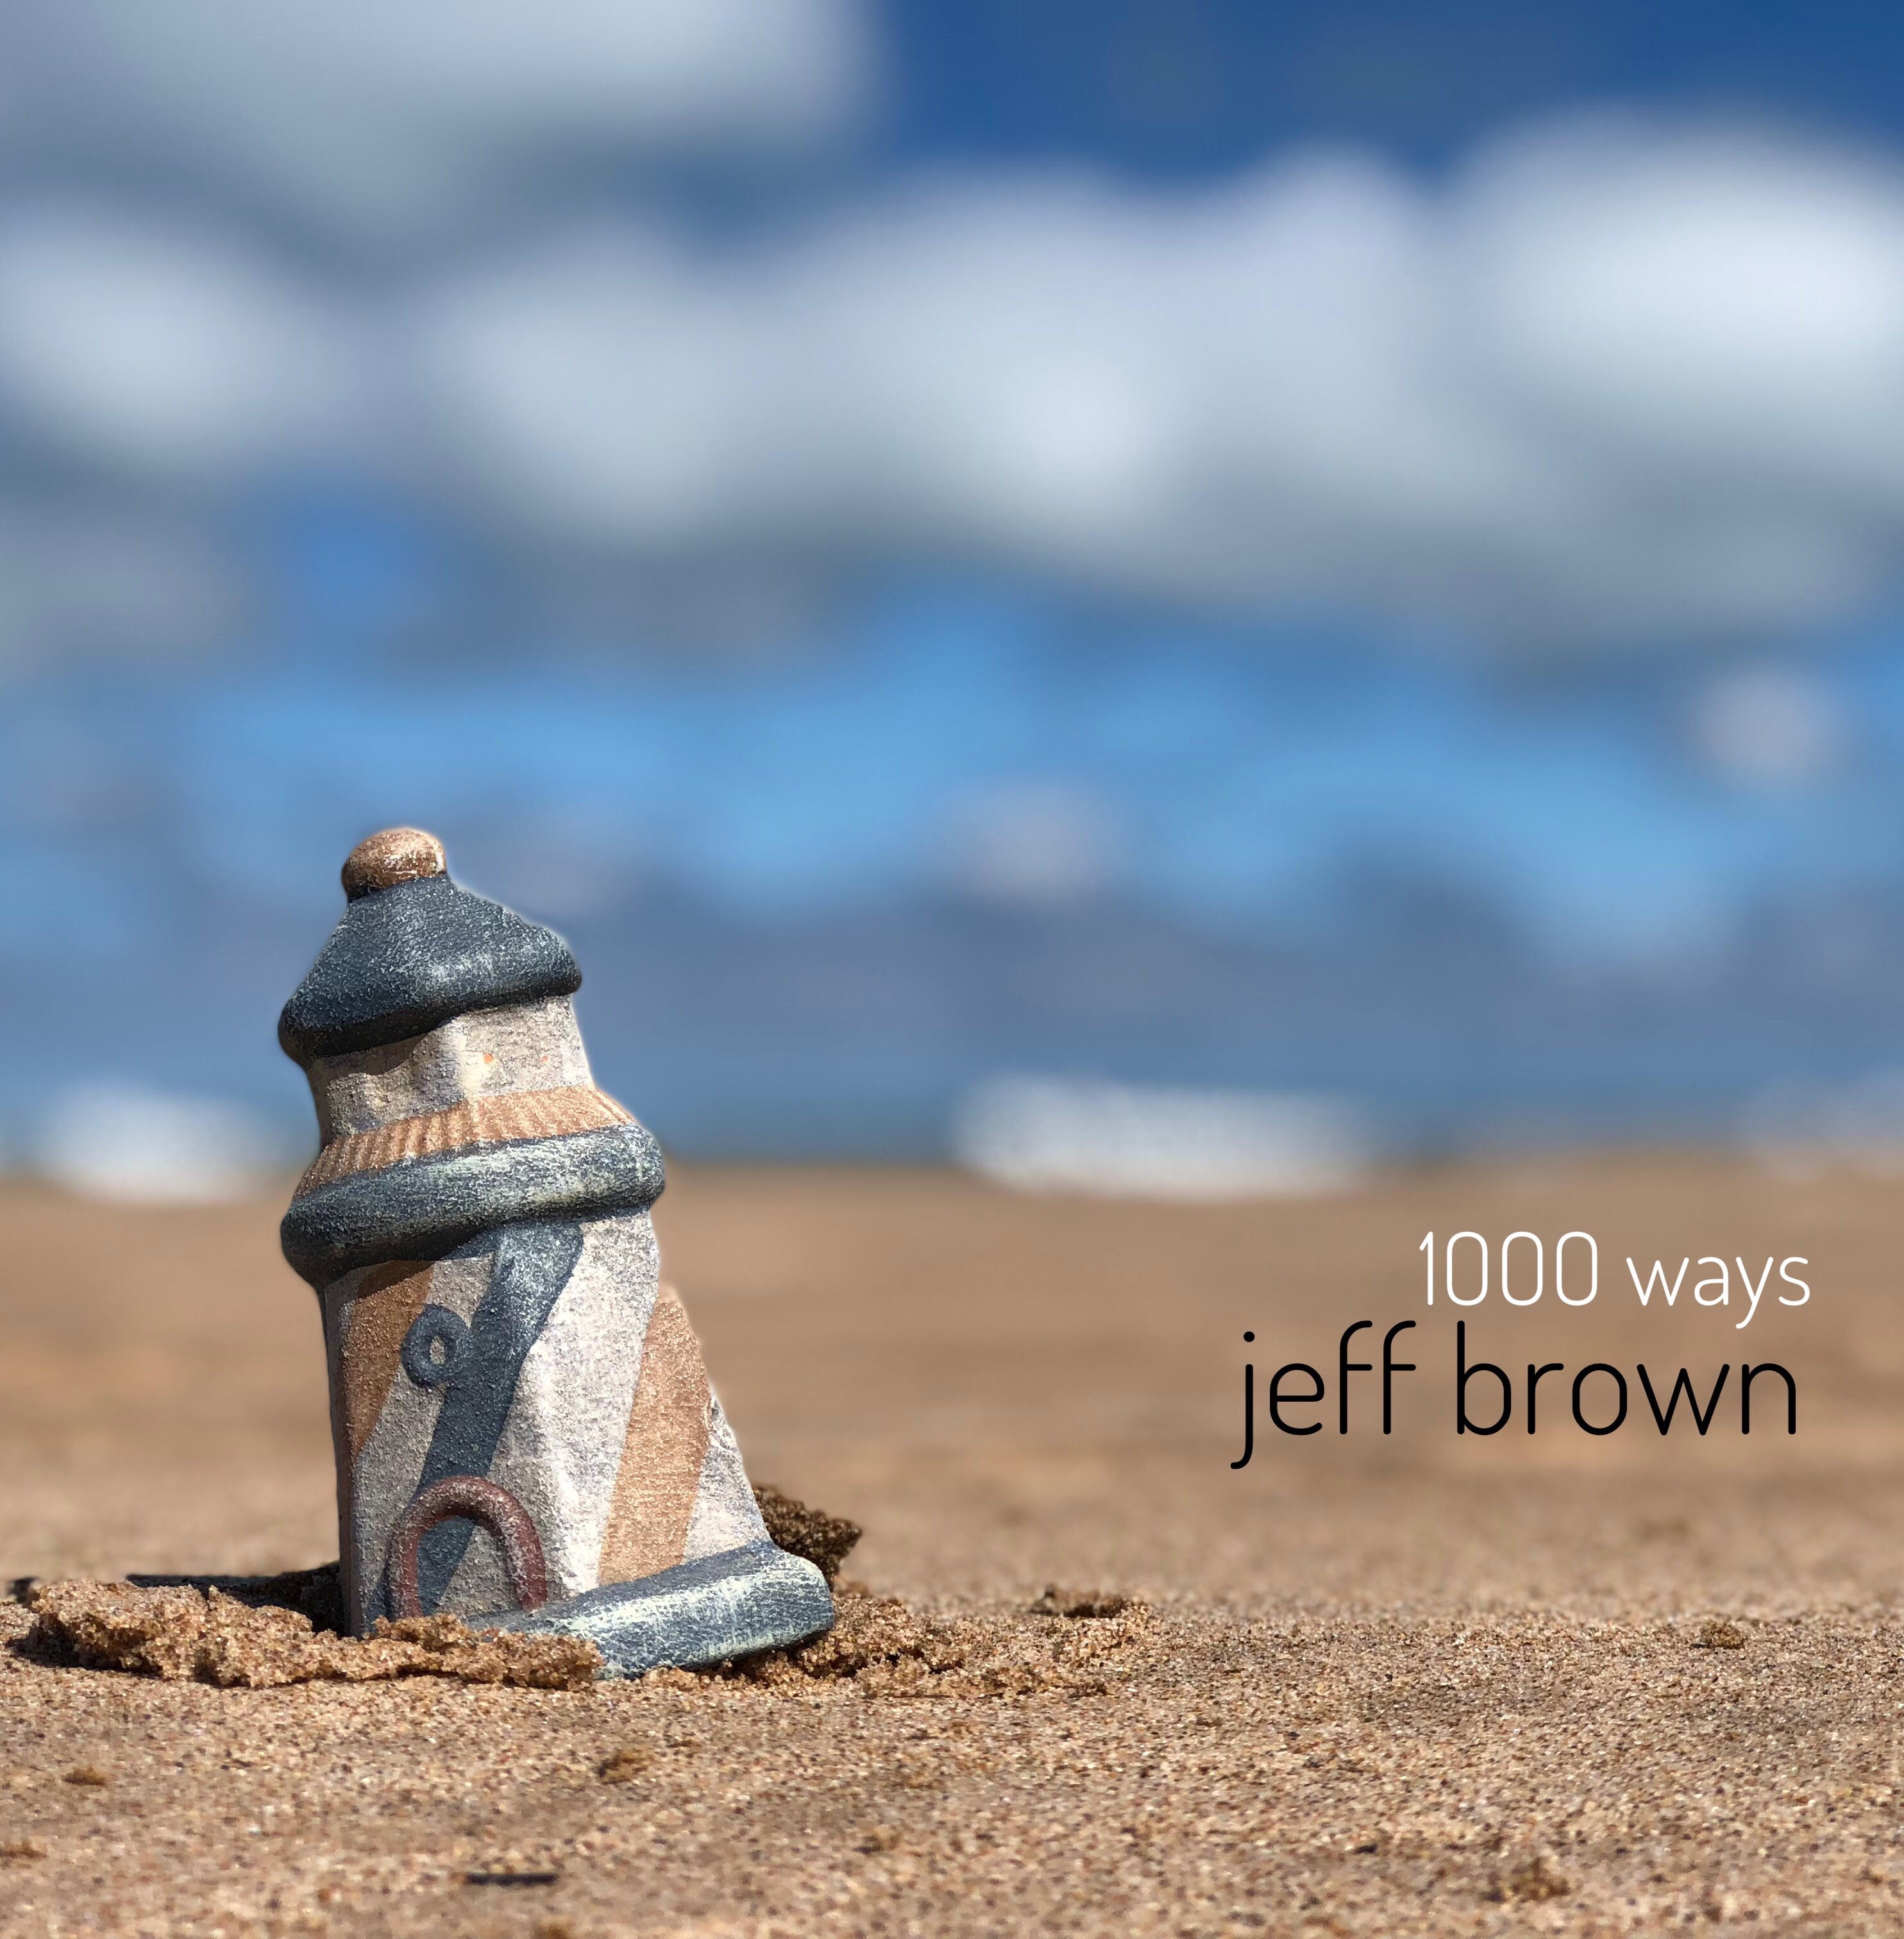 1,000 Ways New Acoustic Album by Jeff Brown: The Interview 5